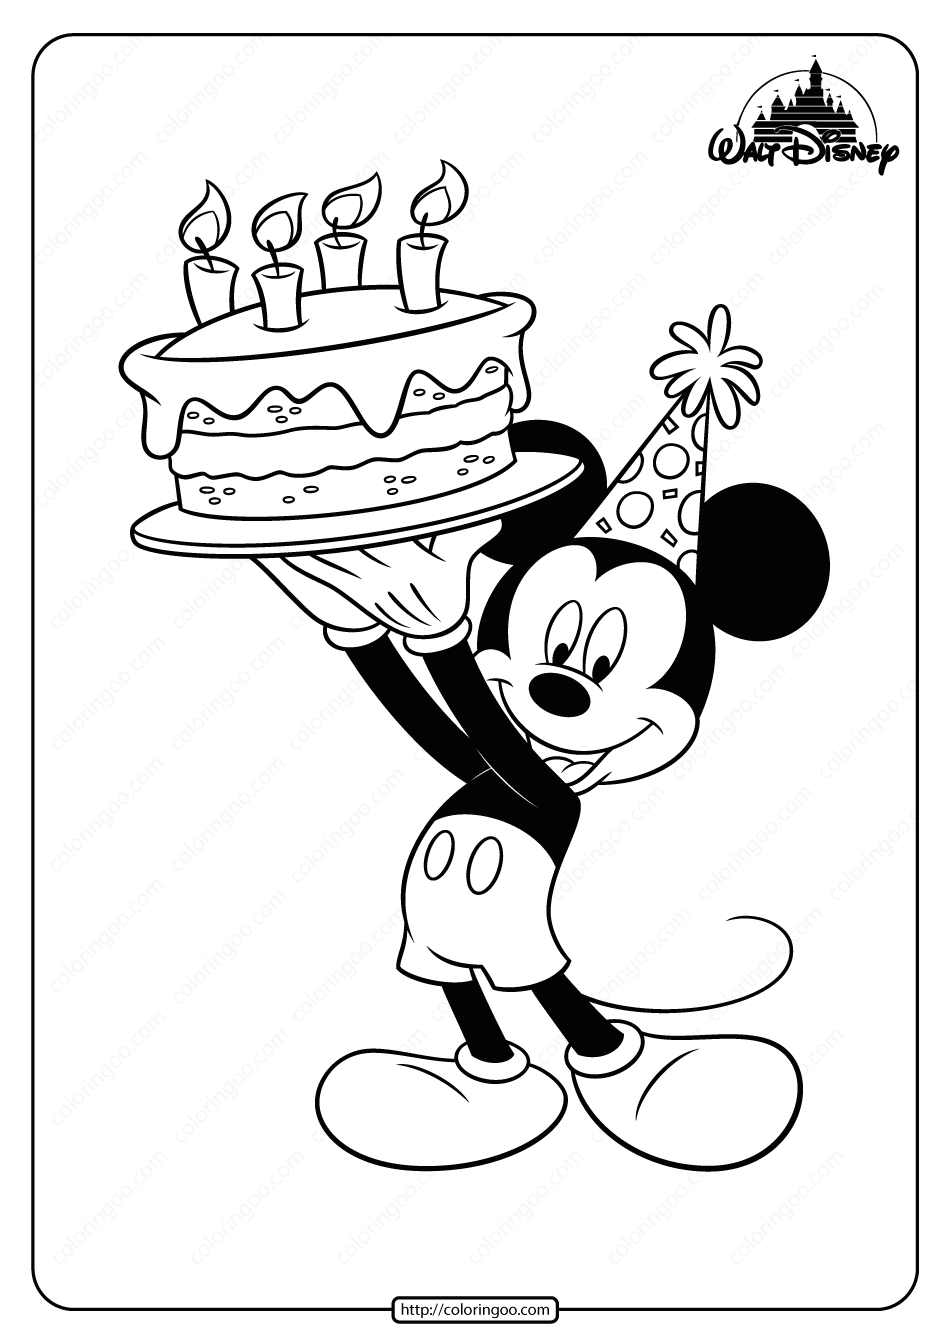 mickey birthday coloring pages mickey mouse happy birthday coloring page at getdrawings birthday coloring pages mickey